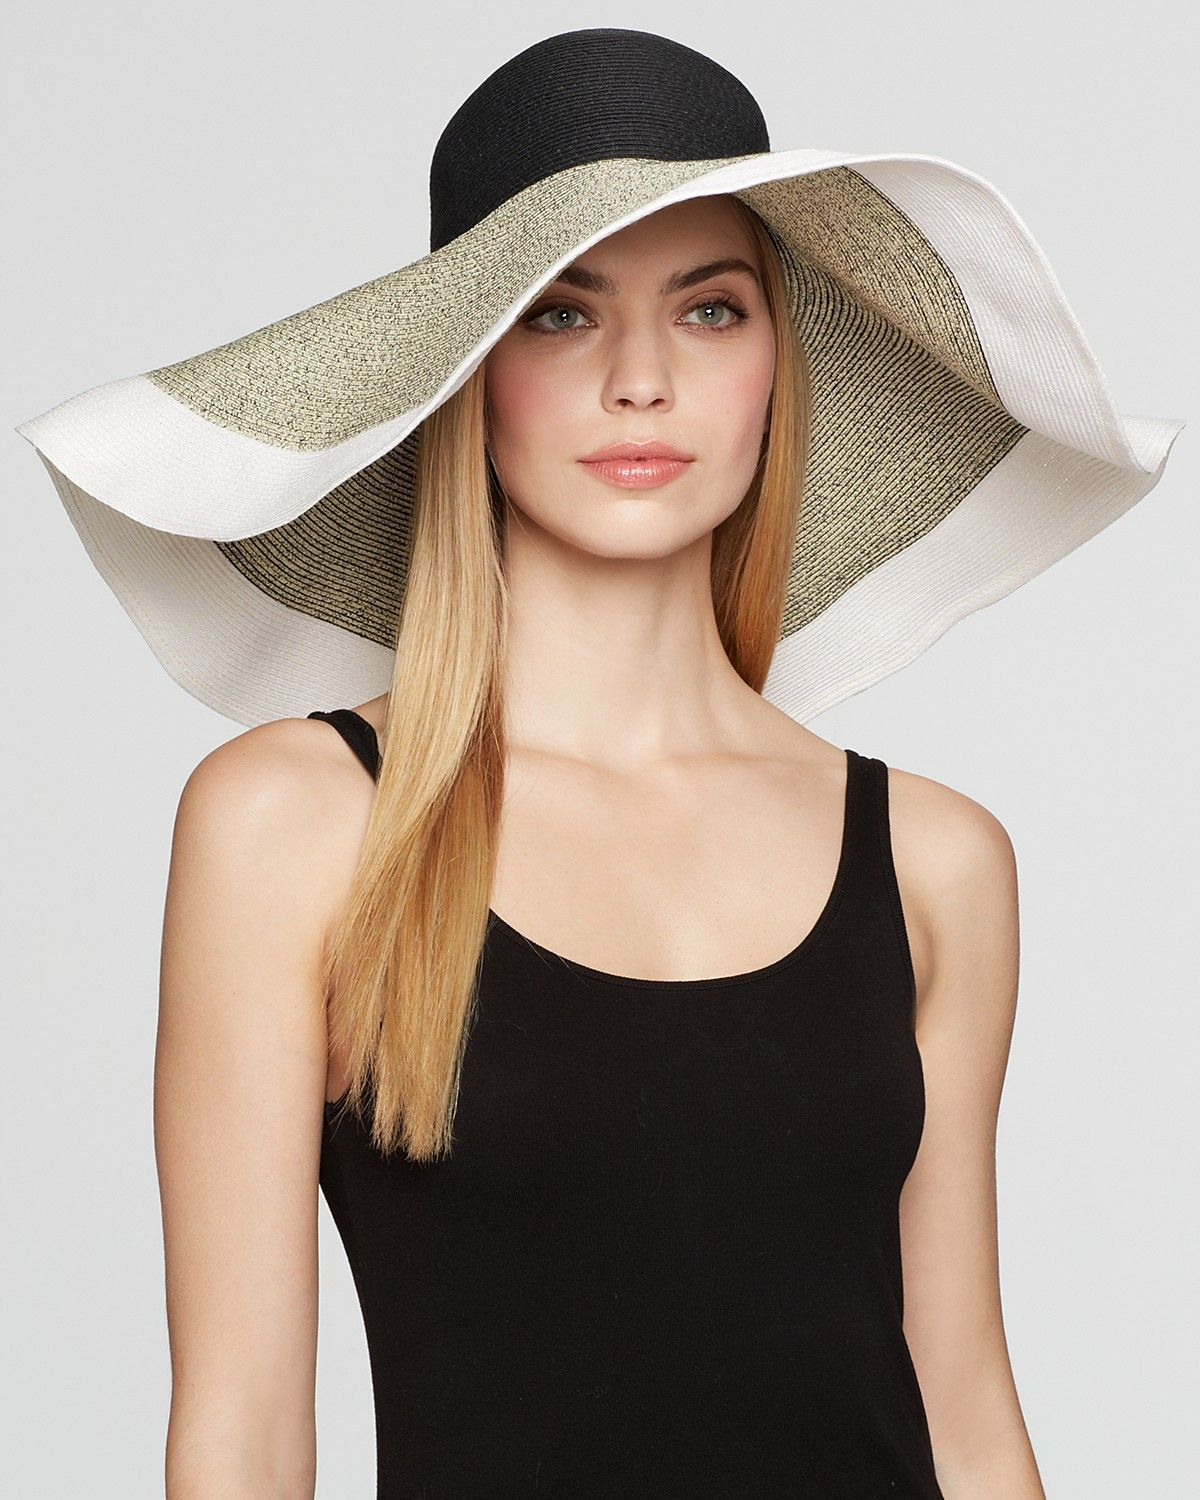 896c41da351 AQUA Extra Large Floppy Wired Brim Sun Hat - Bloomingdale's ...